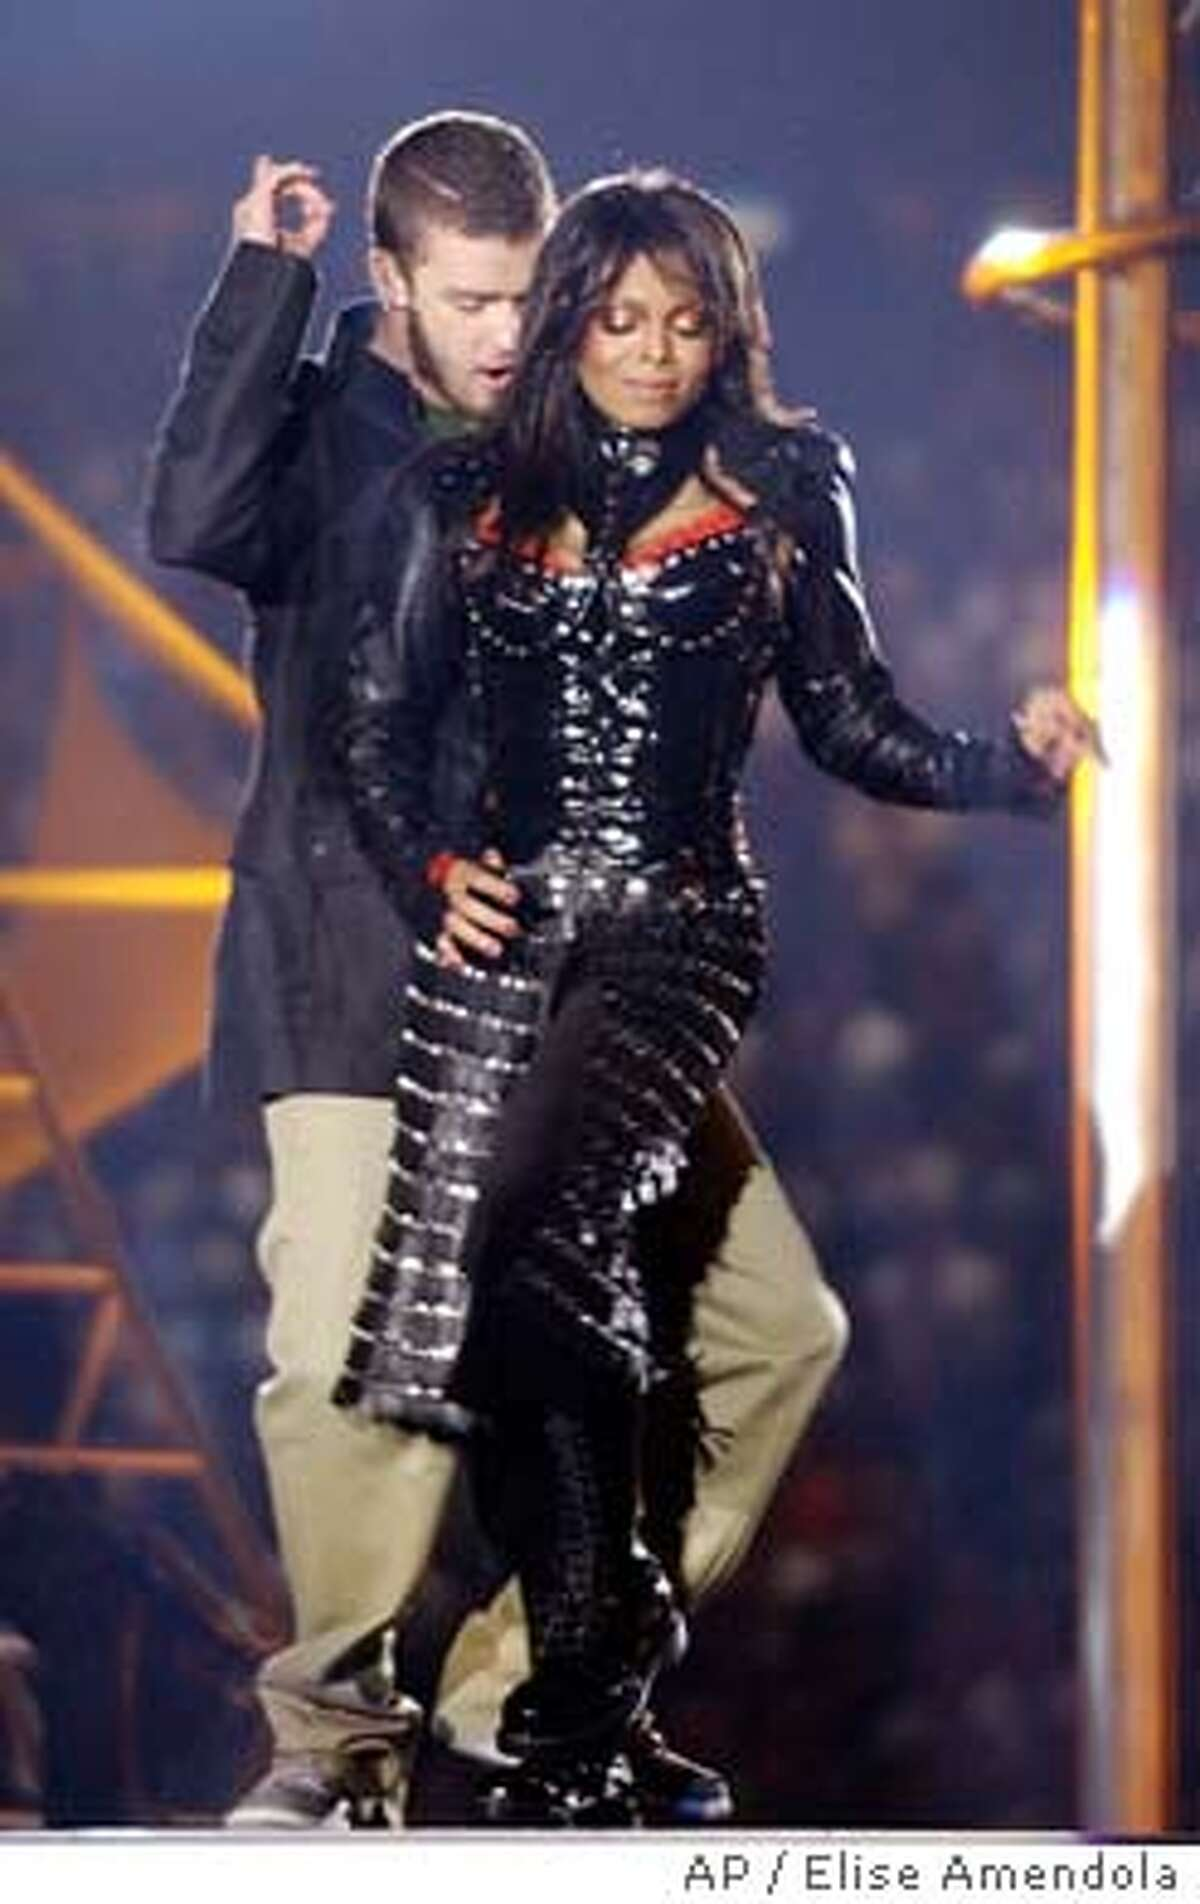 Justin Timberlake and Janet Jackson perform during halftime of Super Bowl XXXVIII Sunday, Feb. 1, 2004, in Houston. The chief federal regulator of broadcasting was outraged by the Super Bowl halftime show and ordered an investigation after part of Jackson's costume was torn off, exposing her breast. (AP Photo/Elise Amendola)